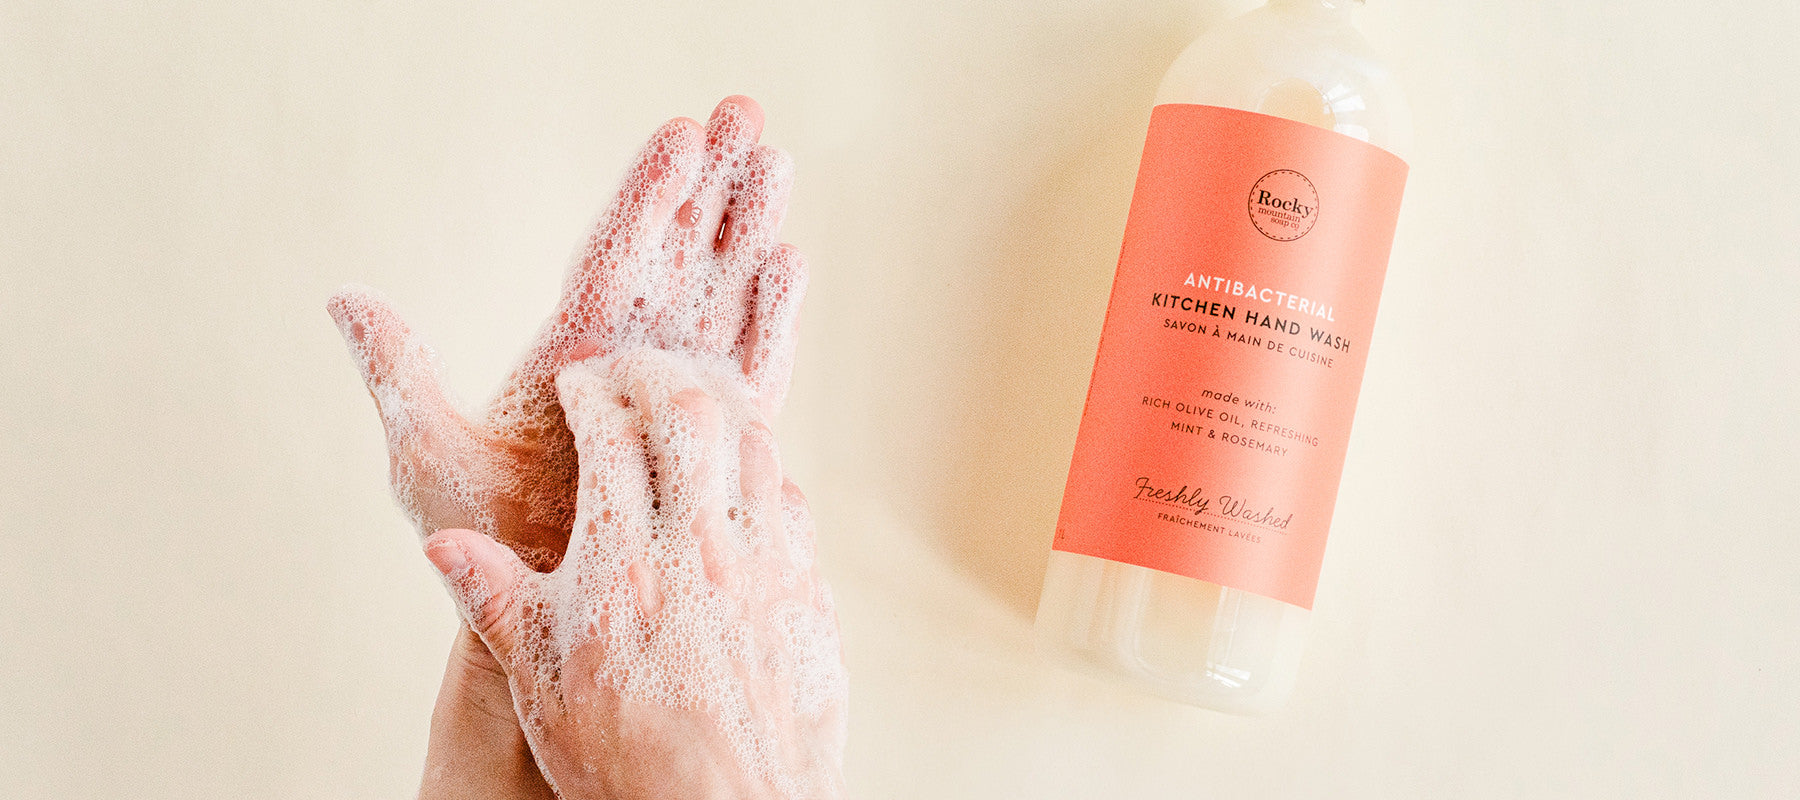 Image of two hands washing with natural antibacterial Kitchen hand wash.